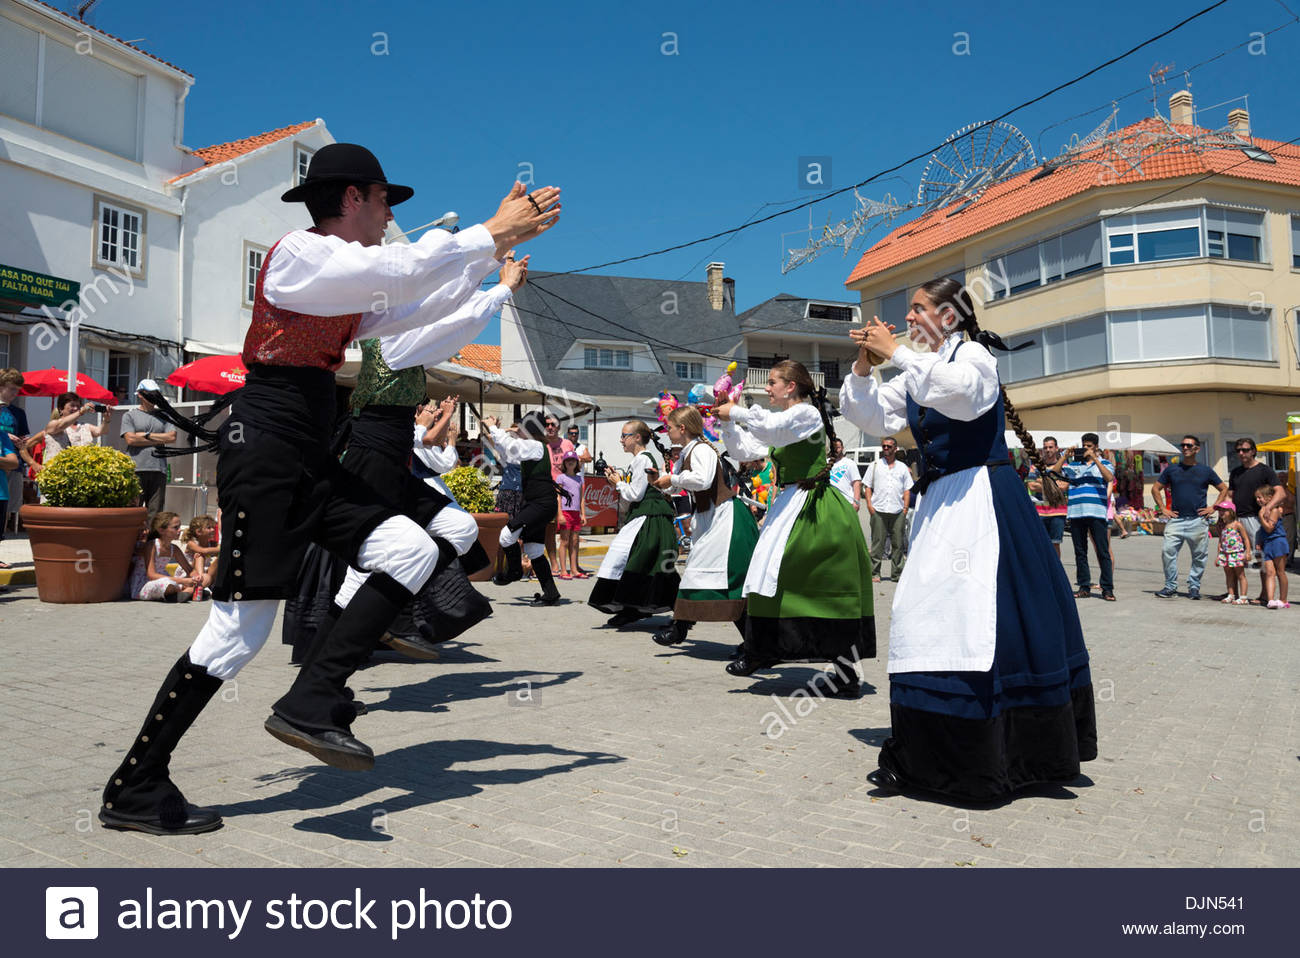 Young people performing traditional folk dance during annual fiestas, Corrubedo, Rias Baixas, Galicia, Spain - Stock Image